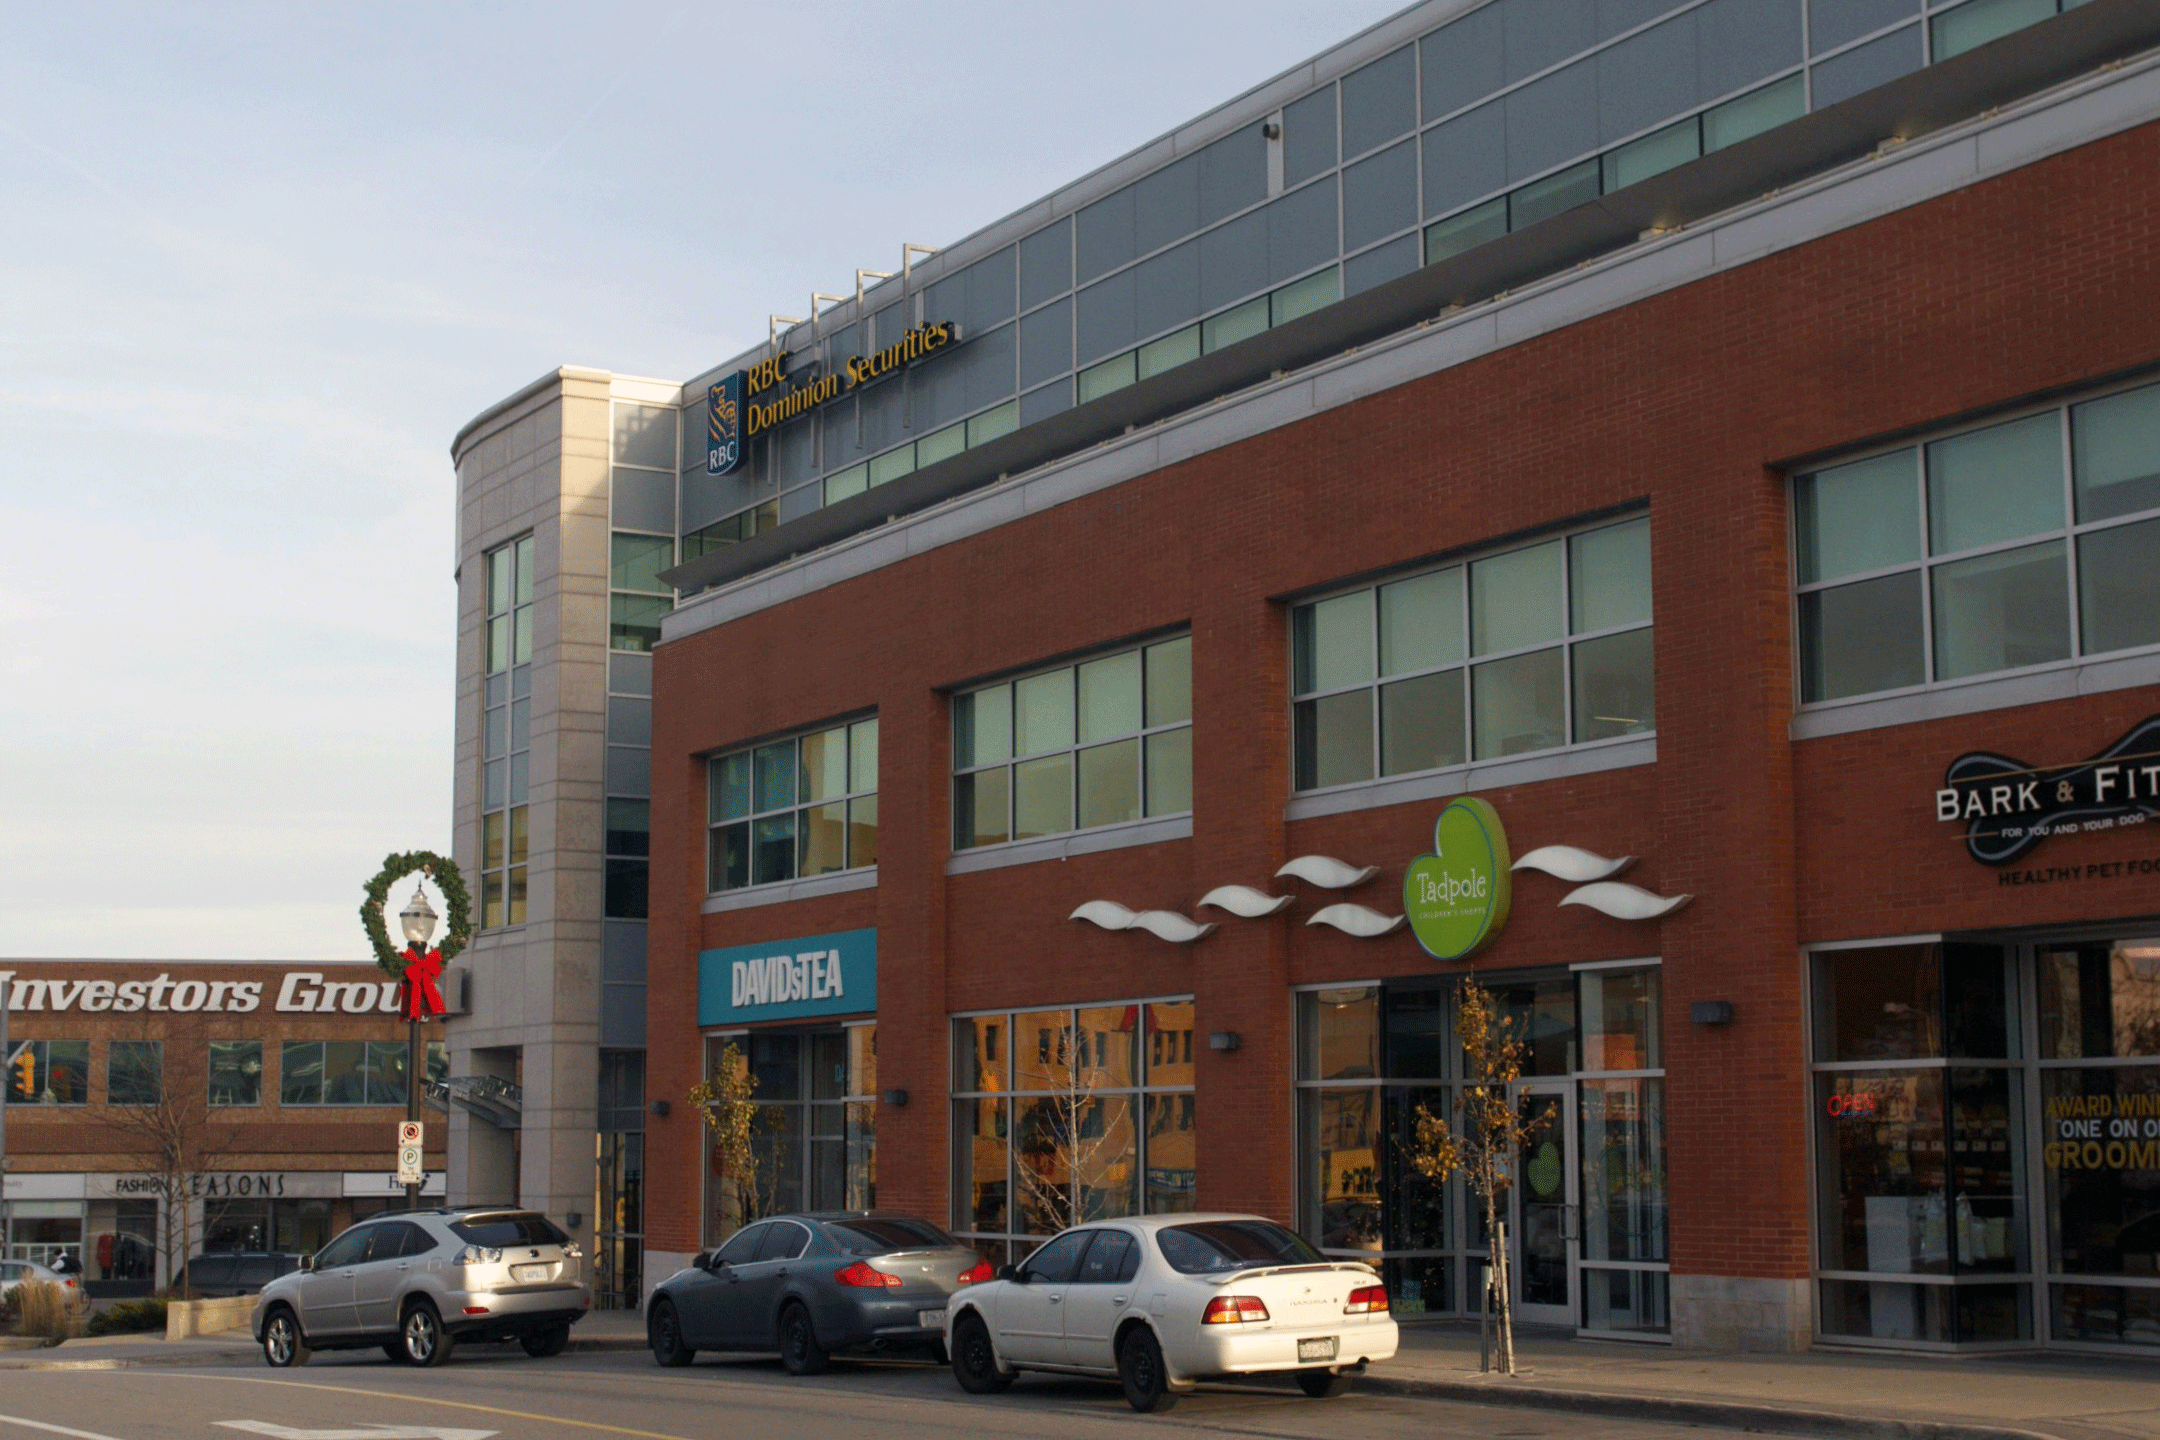 retail space in the center of waterloo